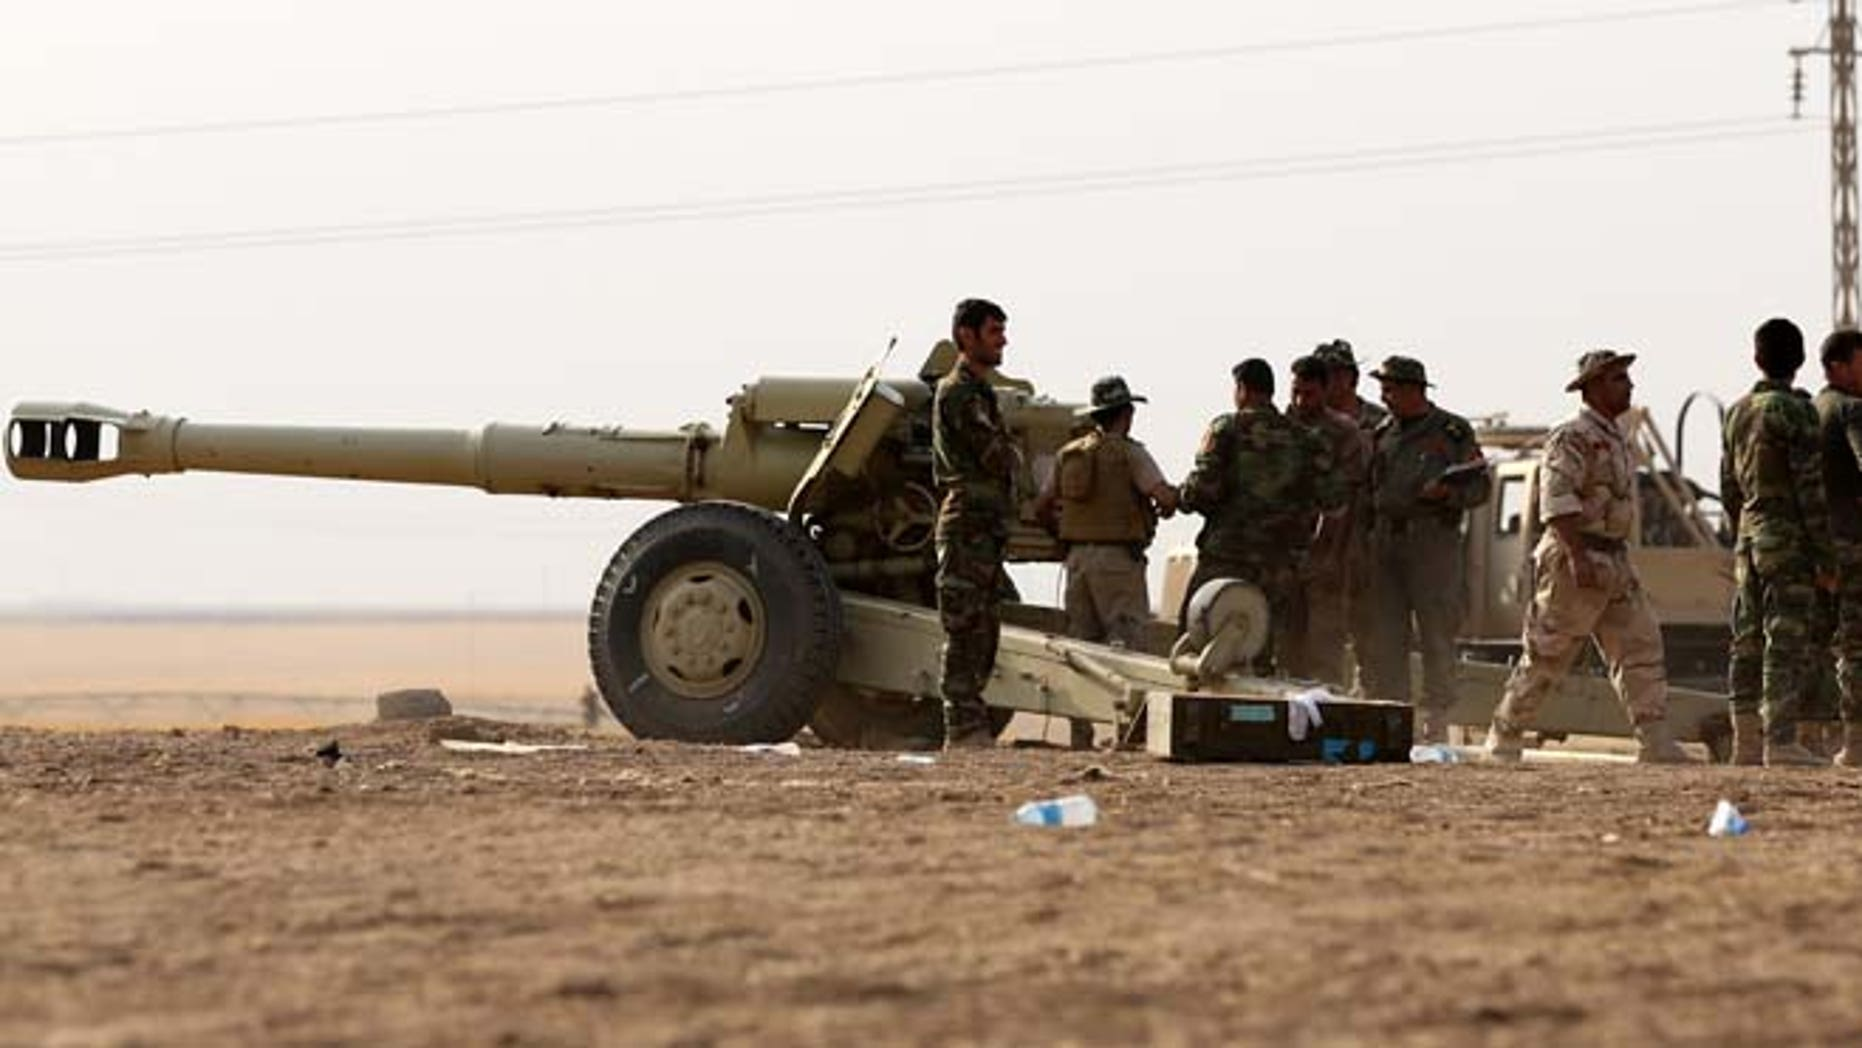 Oct. 1, 2014: Kurdish peshmerga forces stand by their armed vehicles in Mahmoudiyah, Iraq, a day after they take control of the village from the Islamic State group, as they patrol. Iraqi Kurdish fighters on the front lines of battle say they have yet to receive the heavy weapons and training pledged by the United States and nearly a dozen other countries to help them push back the Sunni militants.